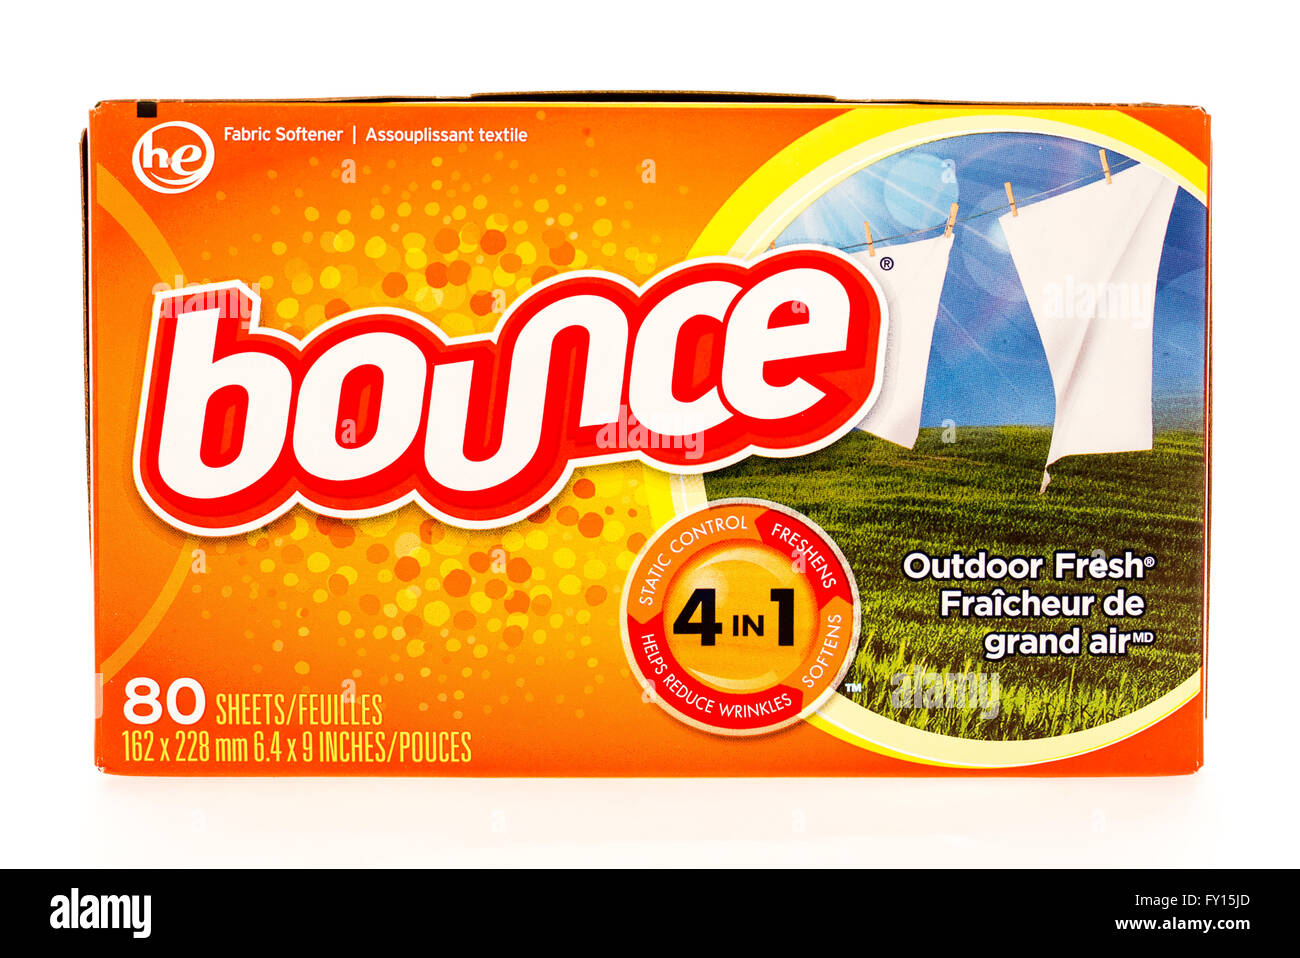 Winneconne, WI - 7 August 2015:  Box of Bounce fabric softner sheets. Stock Photo